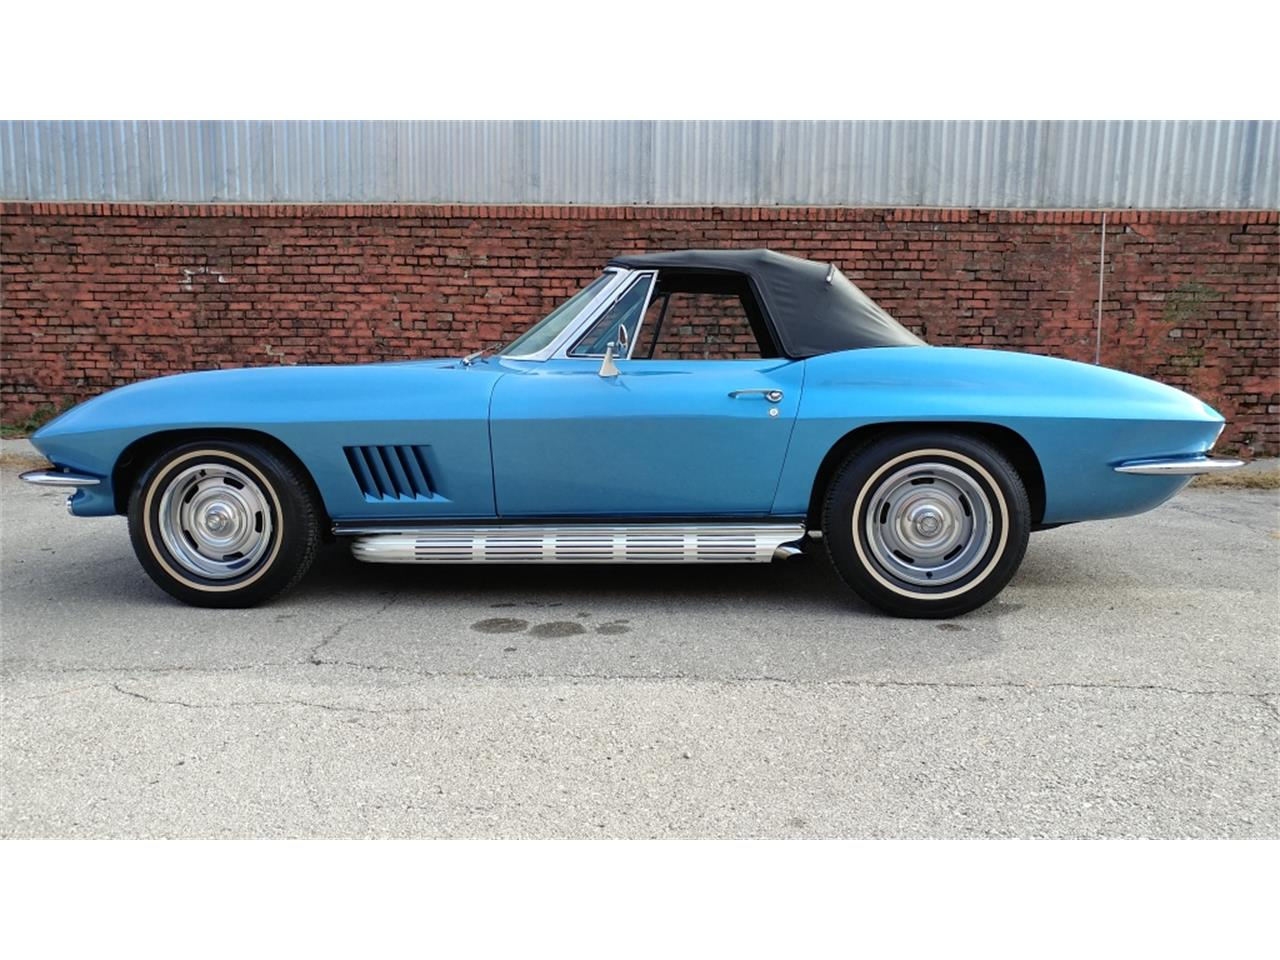 Large Picture of 1967 Chevrolet Corvette located in Missouri - $69,500.00 Offered by Vintage Vettes, LLC - MO2L